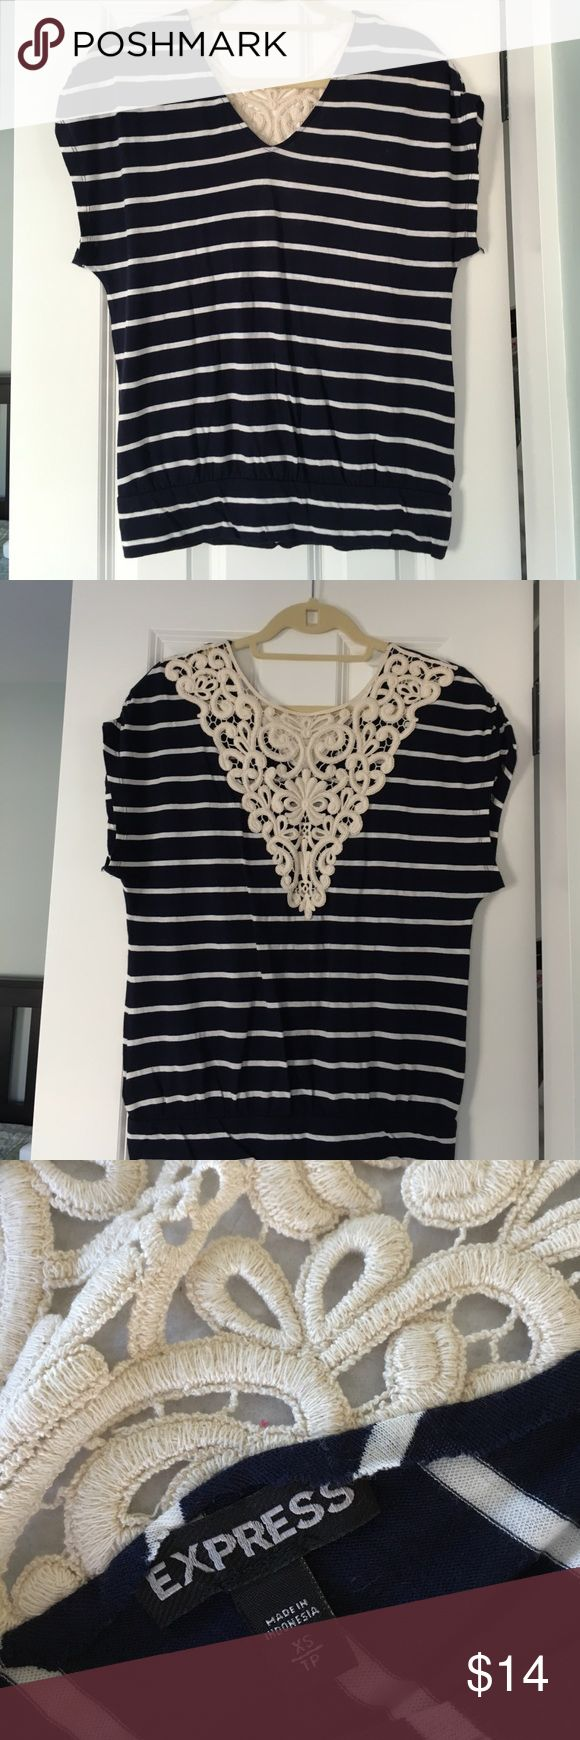 "Express navy blue and white tee. Express Navy blue and white tee with cream colored lace embellishment in the back of the tee. 60% cotton 40% modal. Worn once. Length 14"" from armpit to bottom of shirt. Express Tops Tees - Short Sleeve"